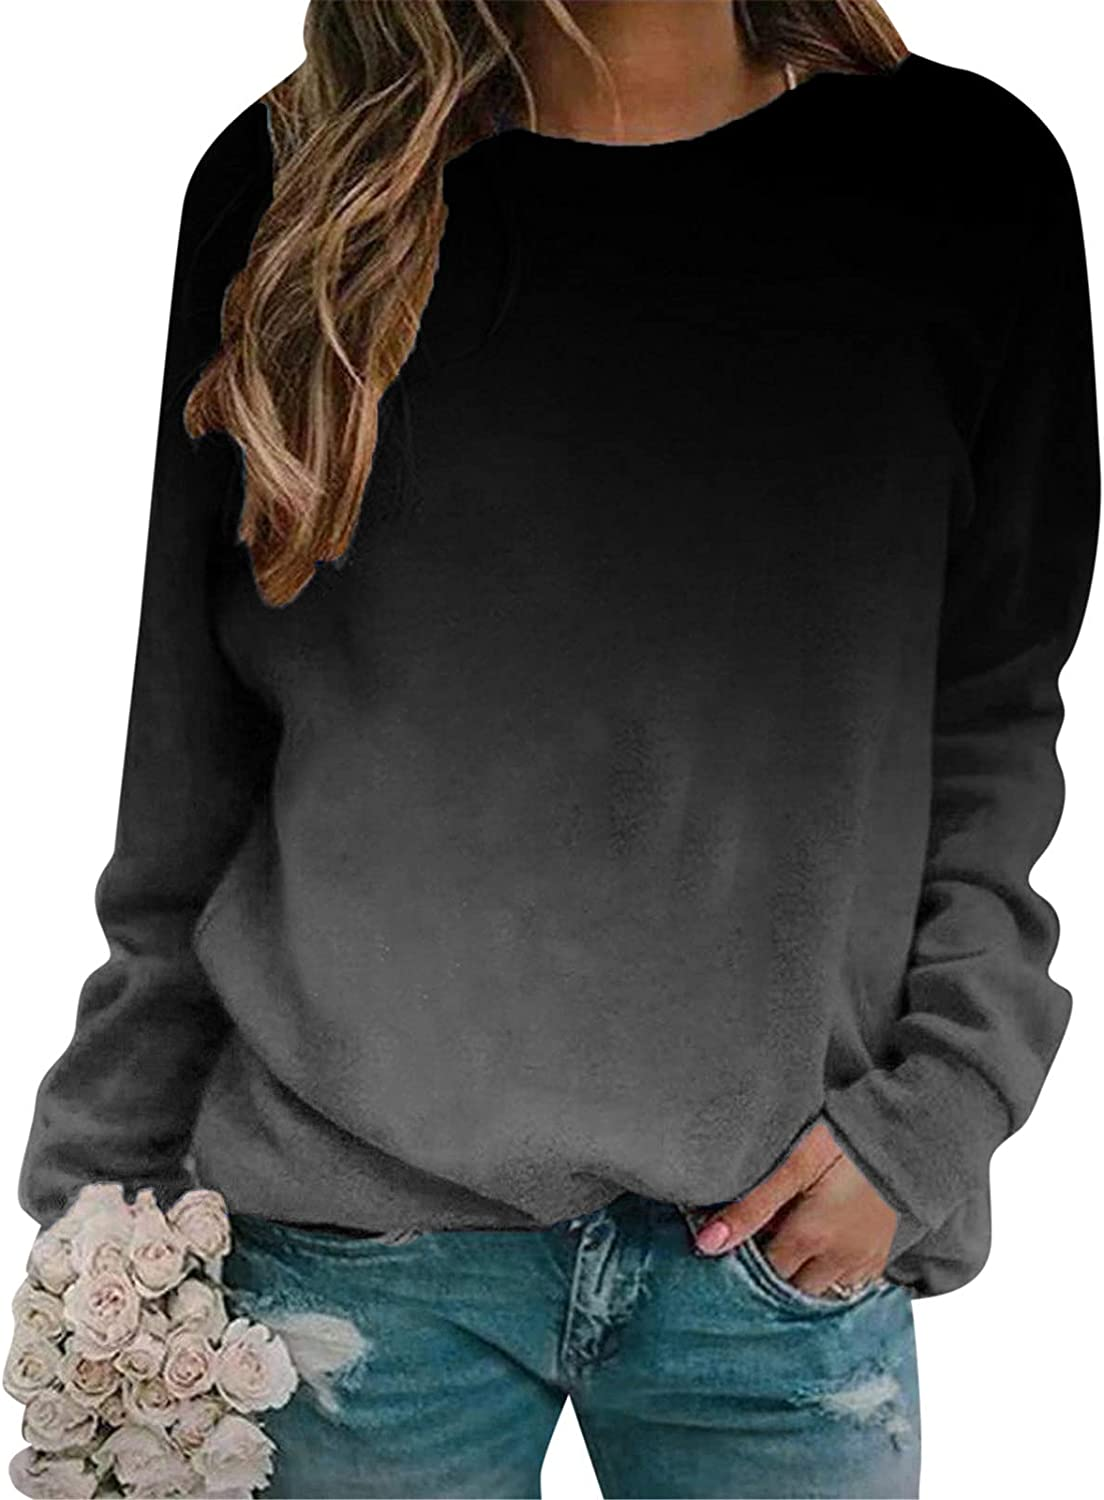 UOCUFY Tops for Women Long Sleeve, Womens Long Sleeve Sweatshirts Tops Casual Cute Graphic Crewneck Pullover Blouses